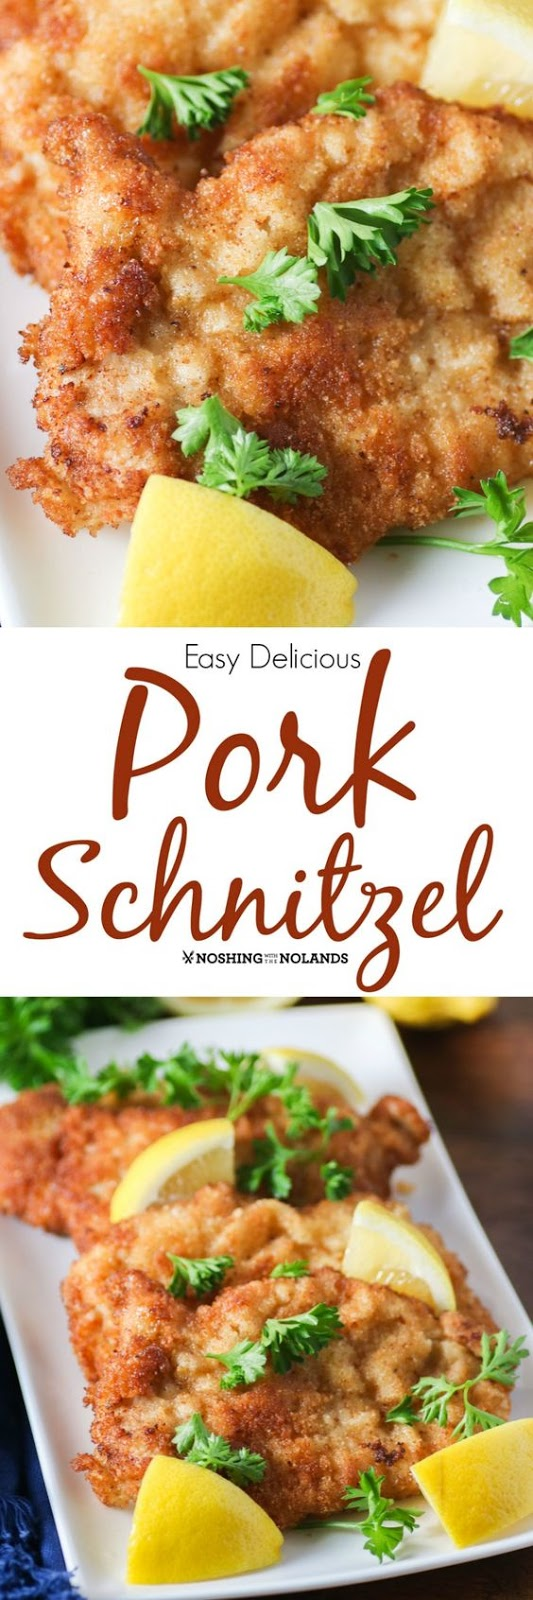 EASY DELICIOUS PORK SCHNITZEL